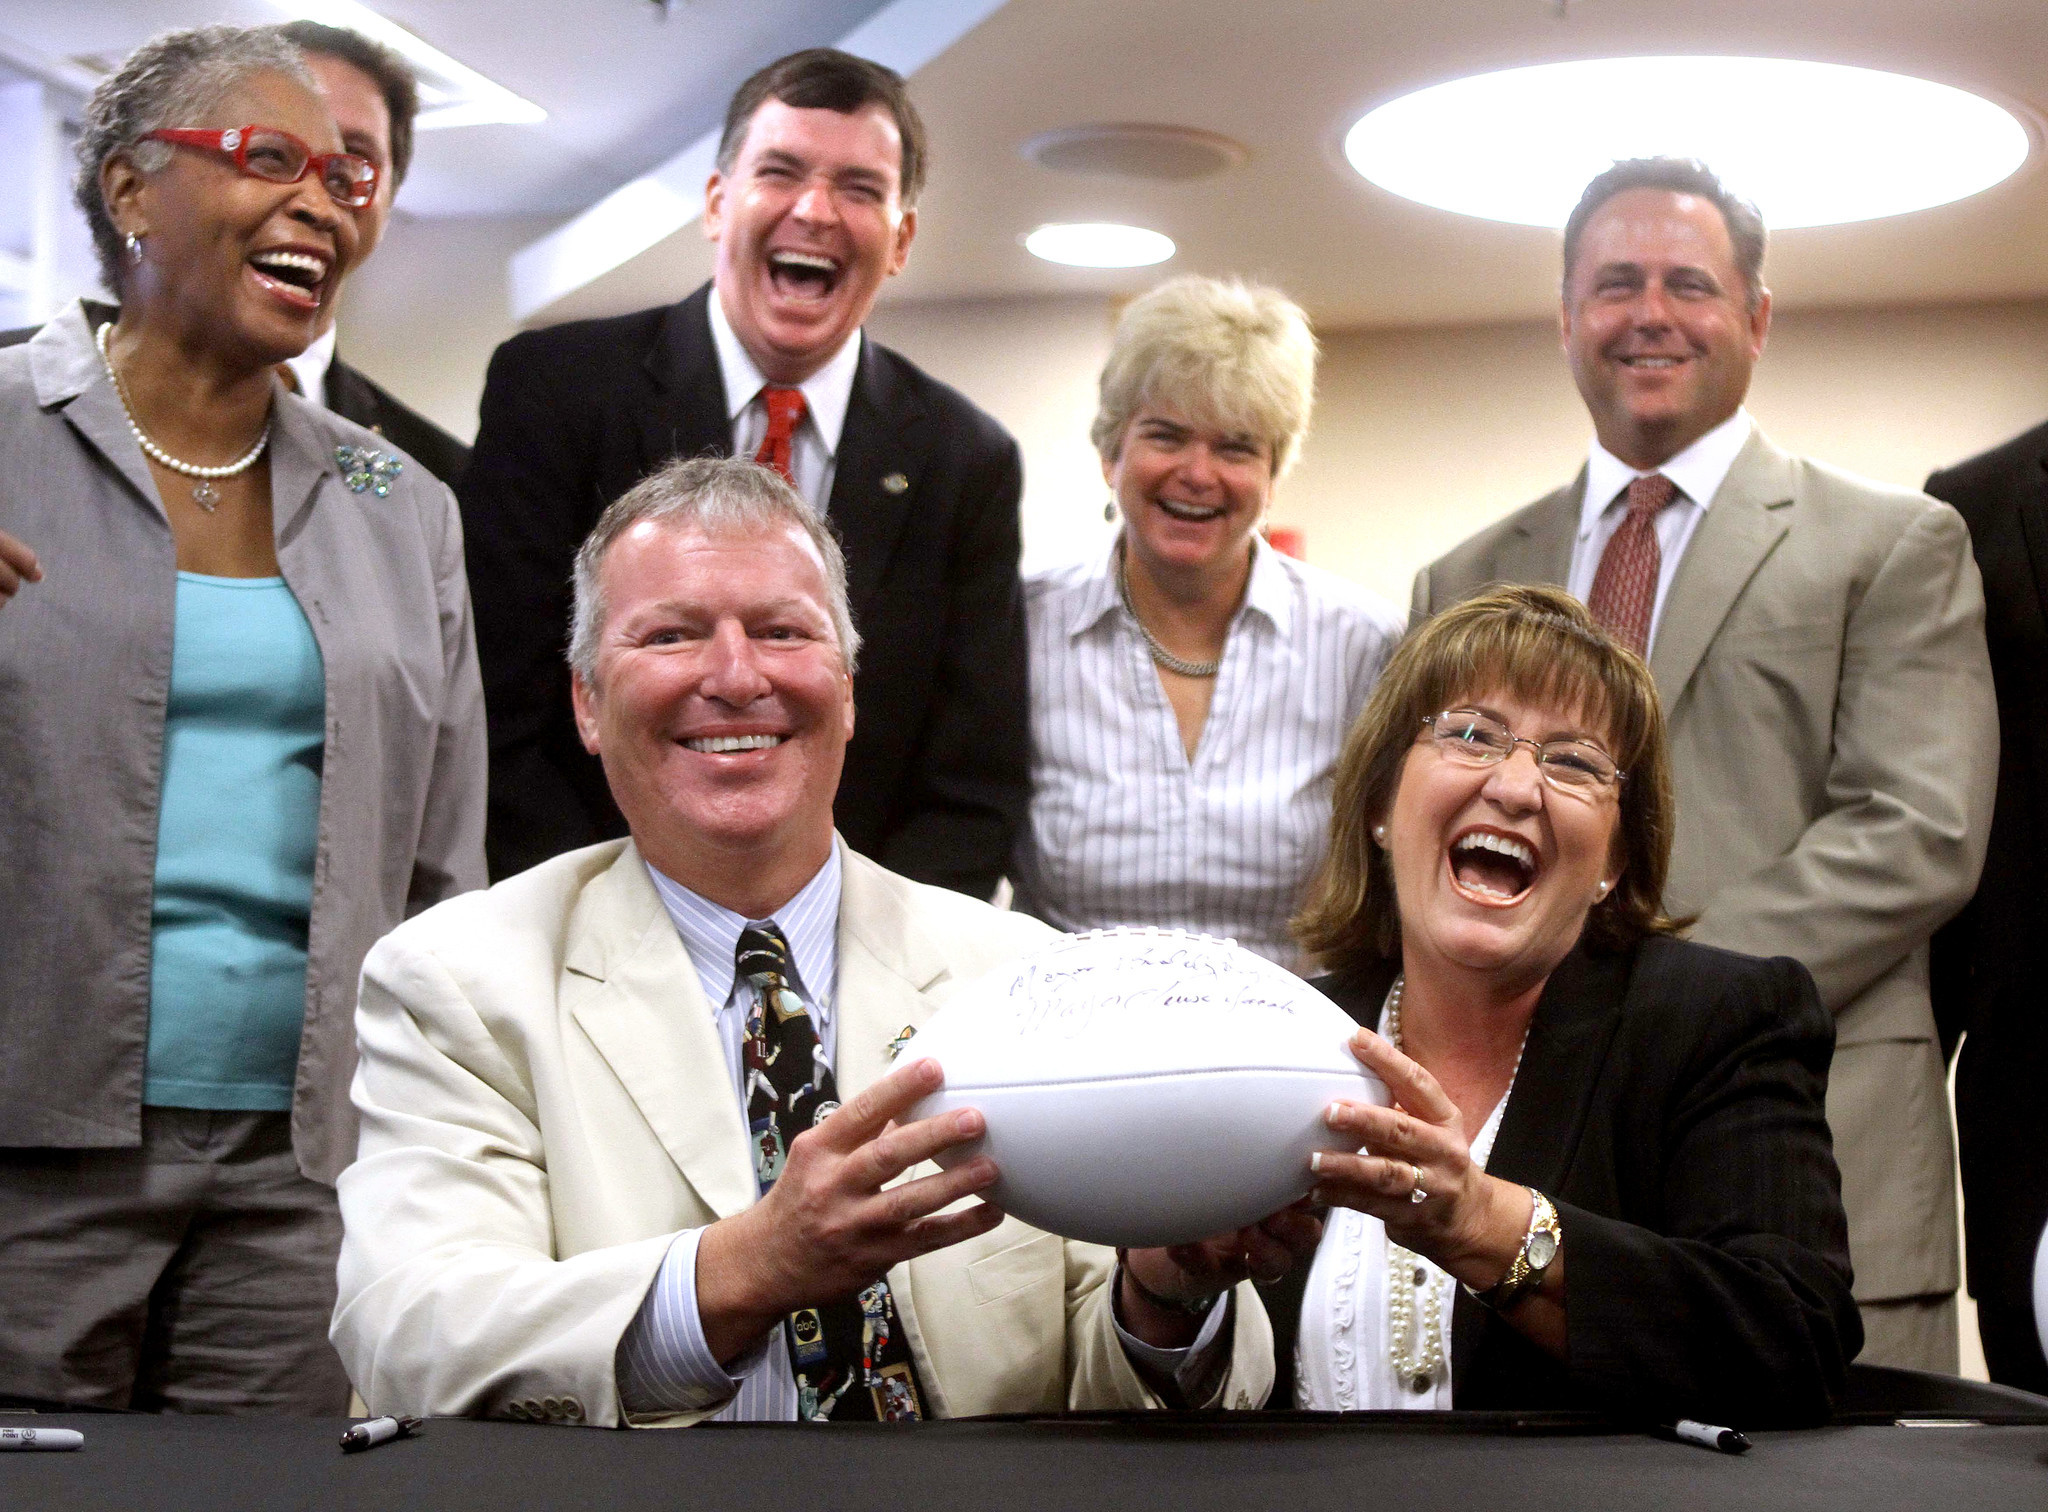 Orlando mayor Buddy Dyer, Orange mayor Teresa Jacobs and commissioners, from left, Daisy Lynum, Robert Stuart, Patty Sheehan and Scott Boyd, enjoy the moment as a deal for renovation of the Florida Citrus Bowl is officially  announced Monday, June 25, 2012, during a press conference at the stadium.